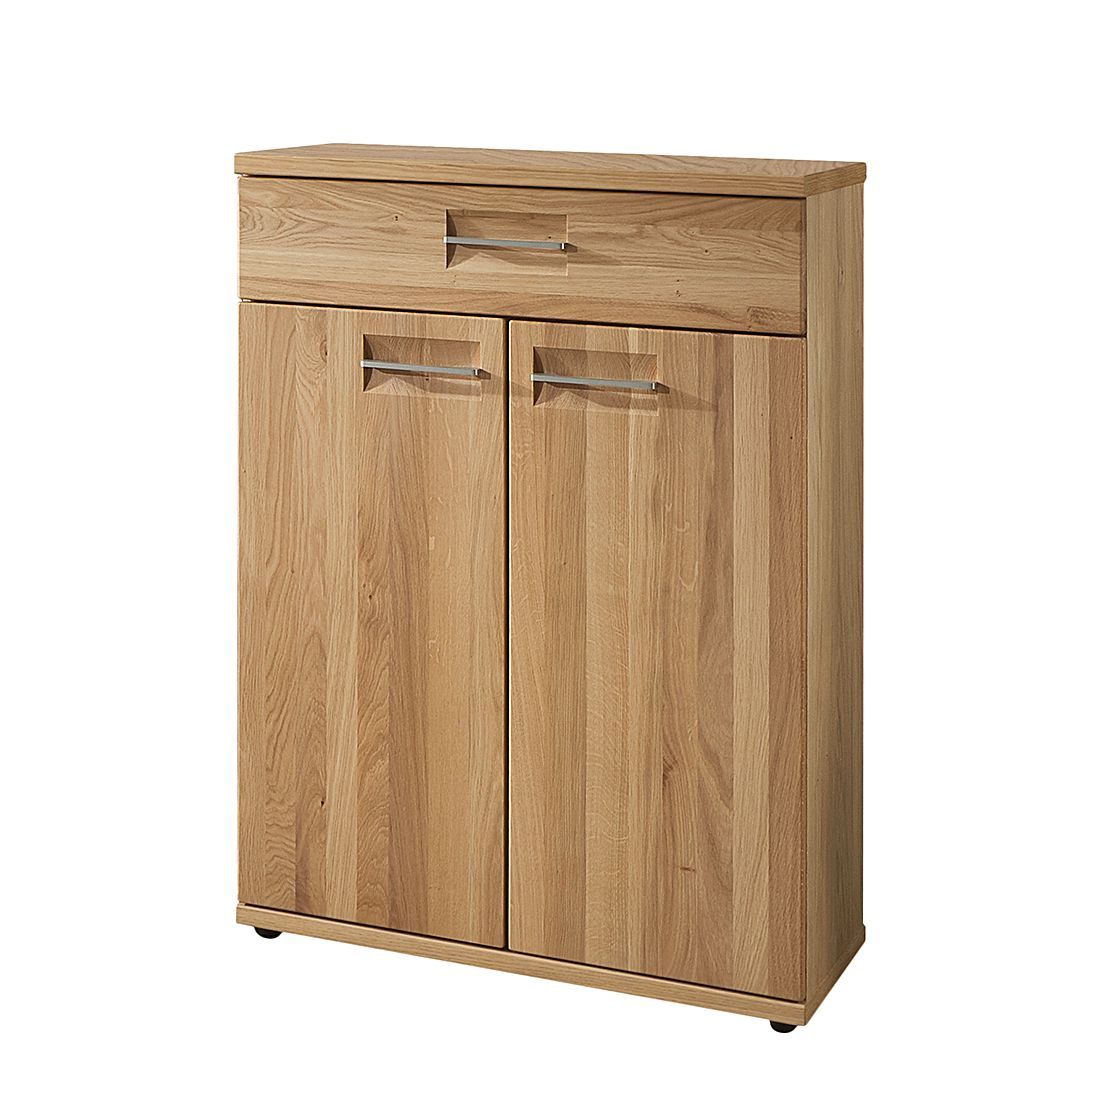 Home24 Commode Redding I, Voss